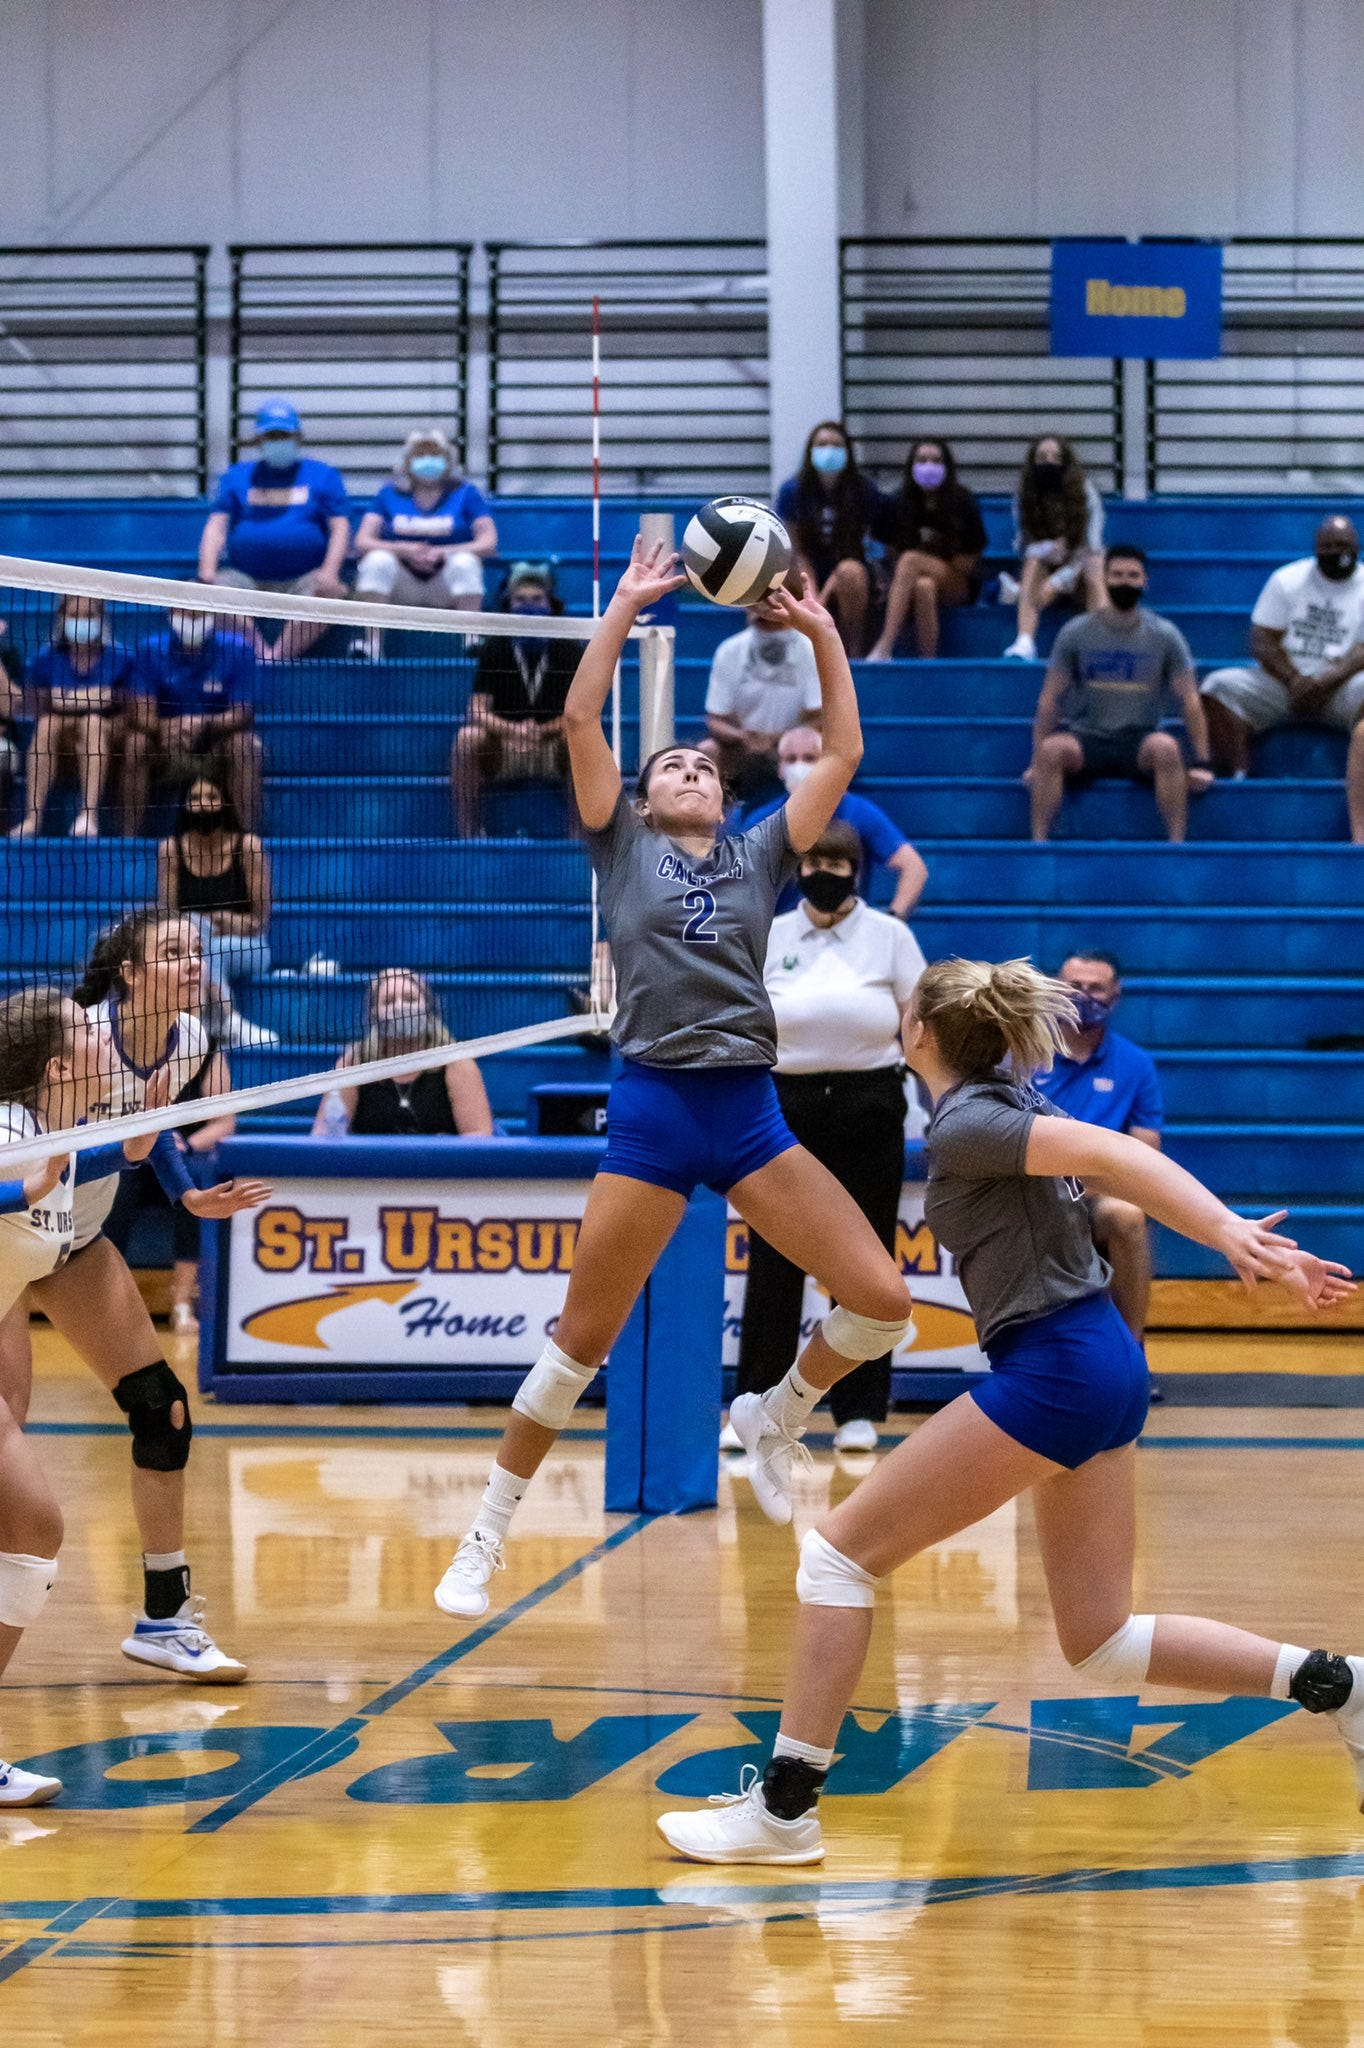 Emma White of Calvert sets up her teammate for a kill in a match with St. Ursula.